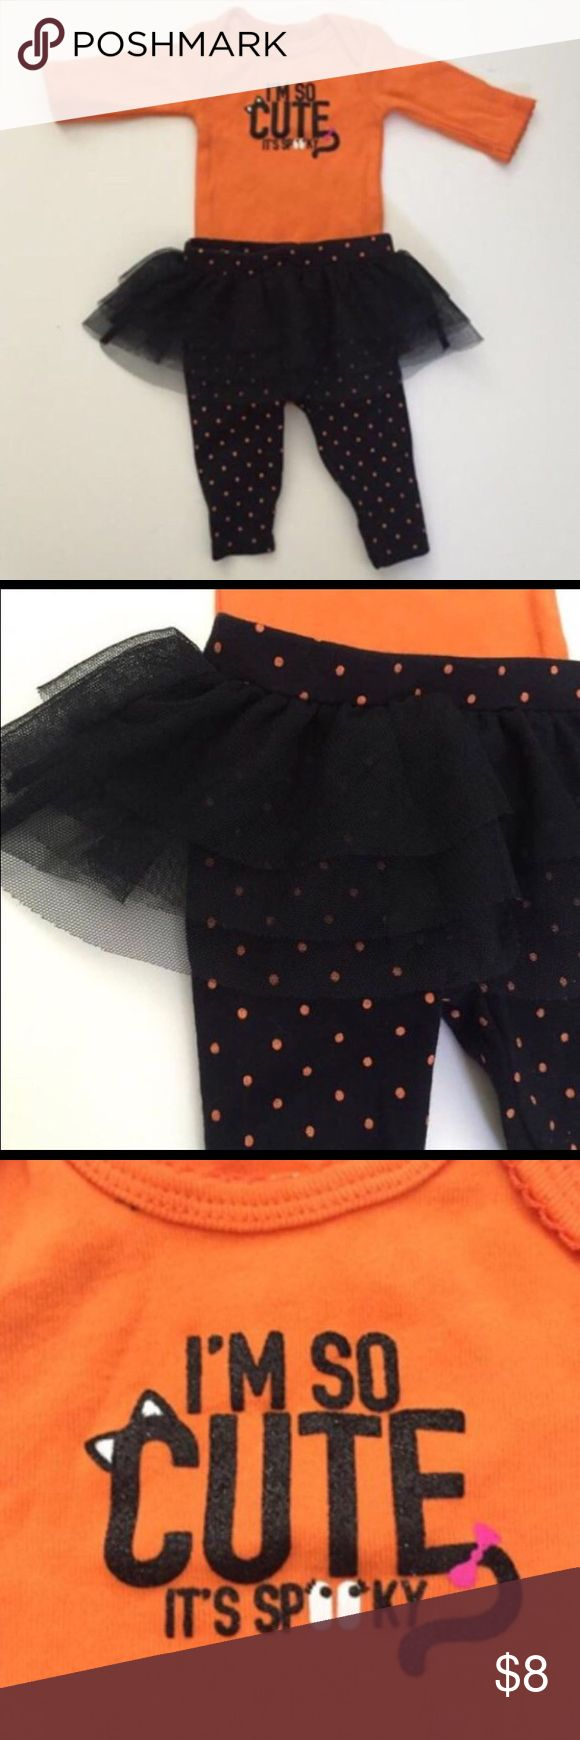 Carter's Halloween Outfit 👻 Carter's Halloween Outfit 👻 Size 9m. New without tags. Carter's Matching Sets